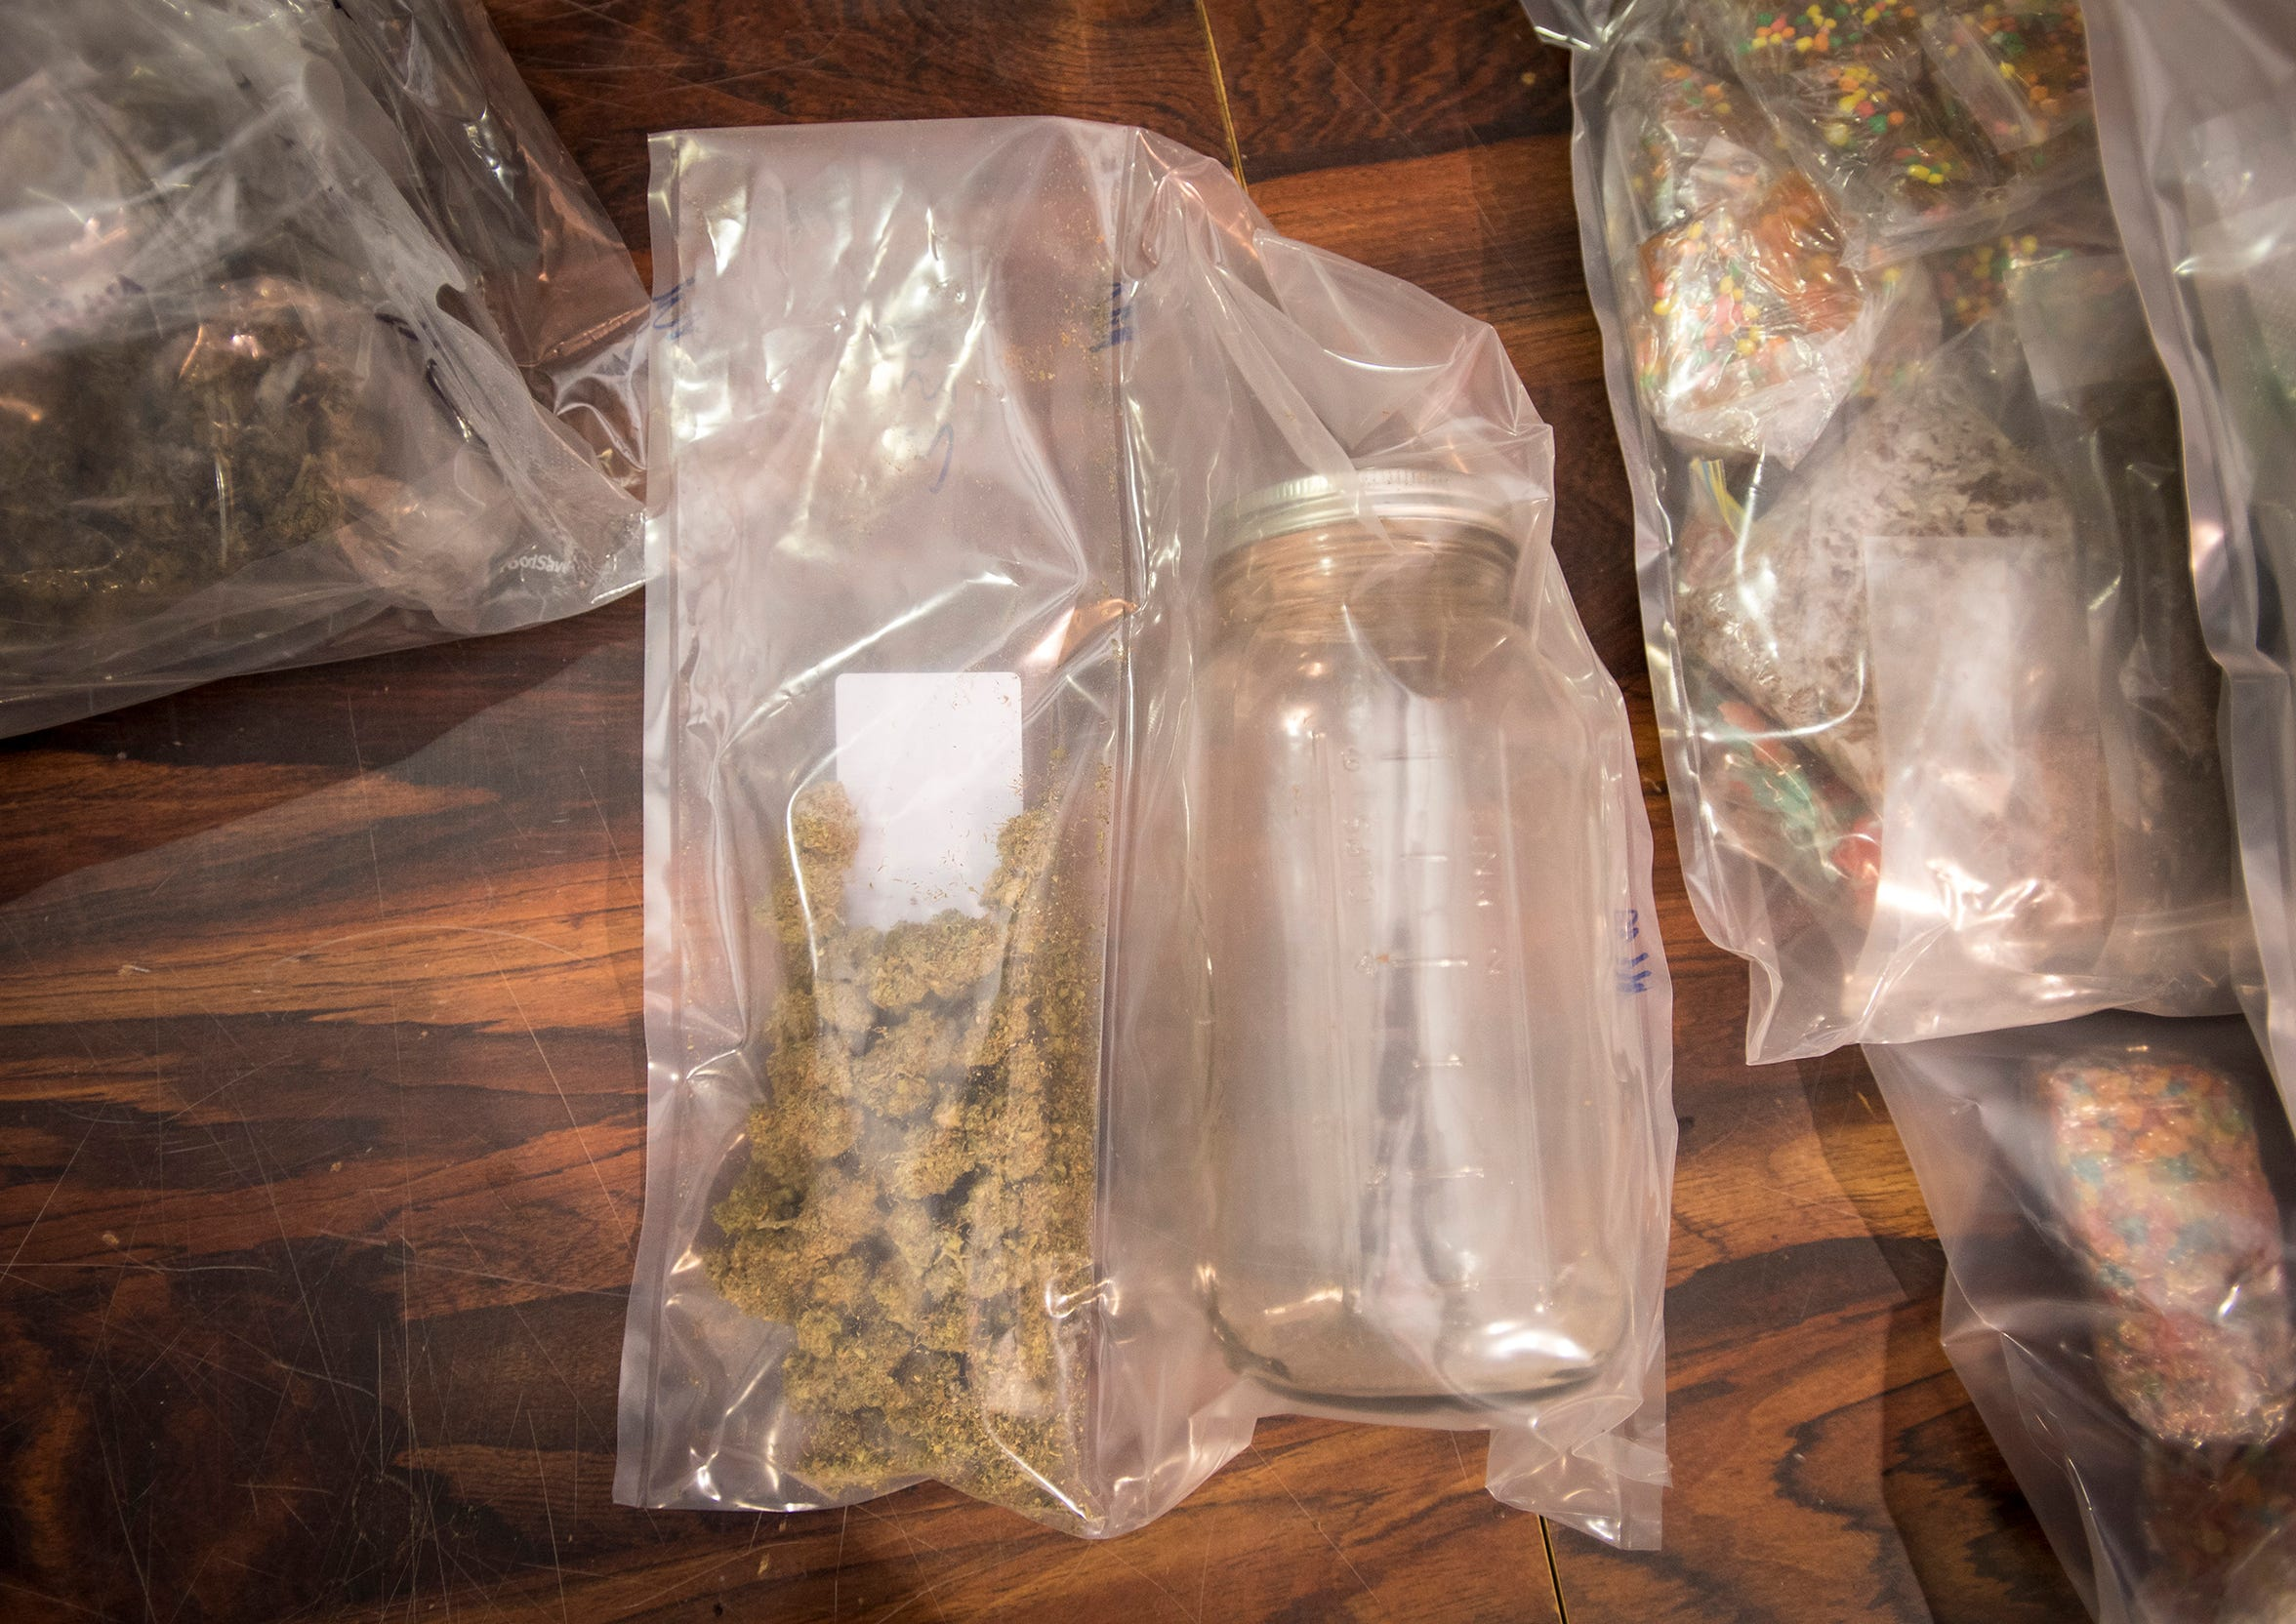 Marijuana and a storage container are seen in an evidence bag at the St. Clair County Sheriff's Drug Task Force.